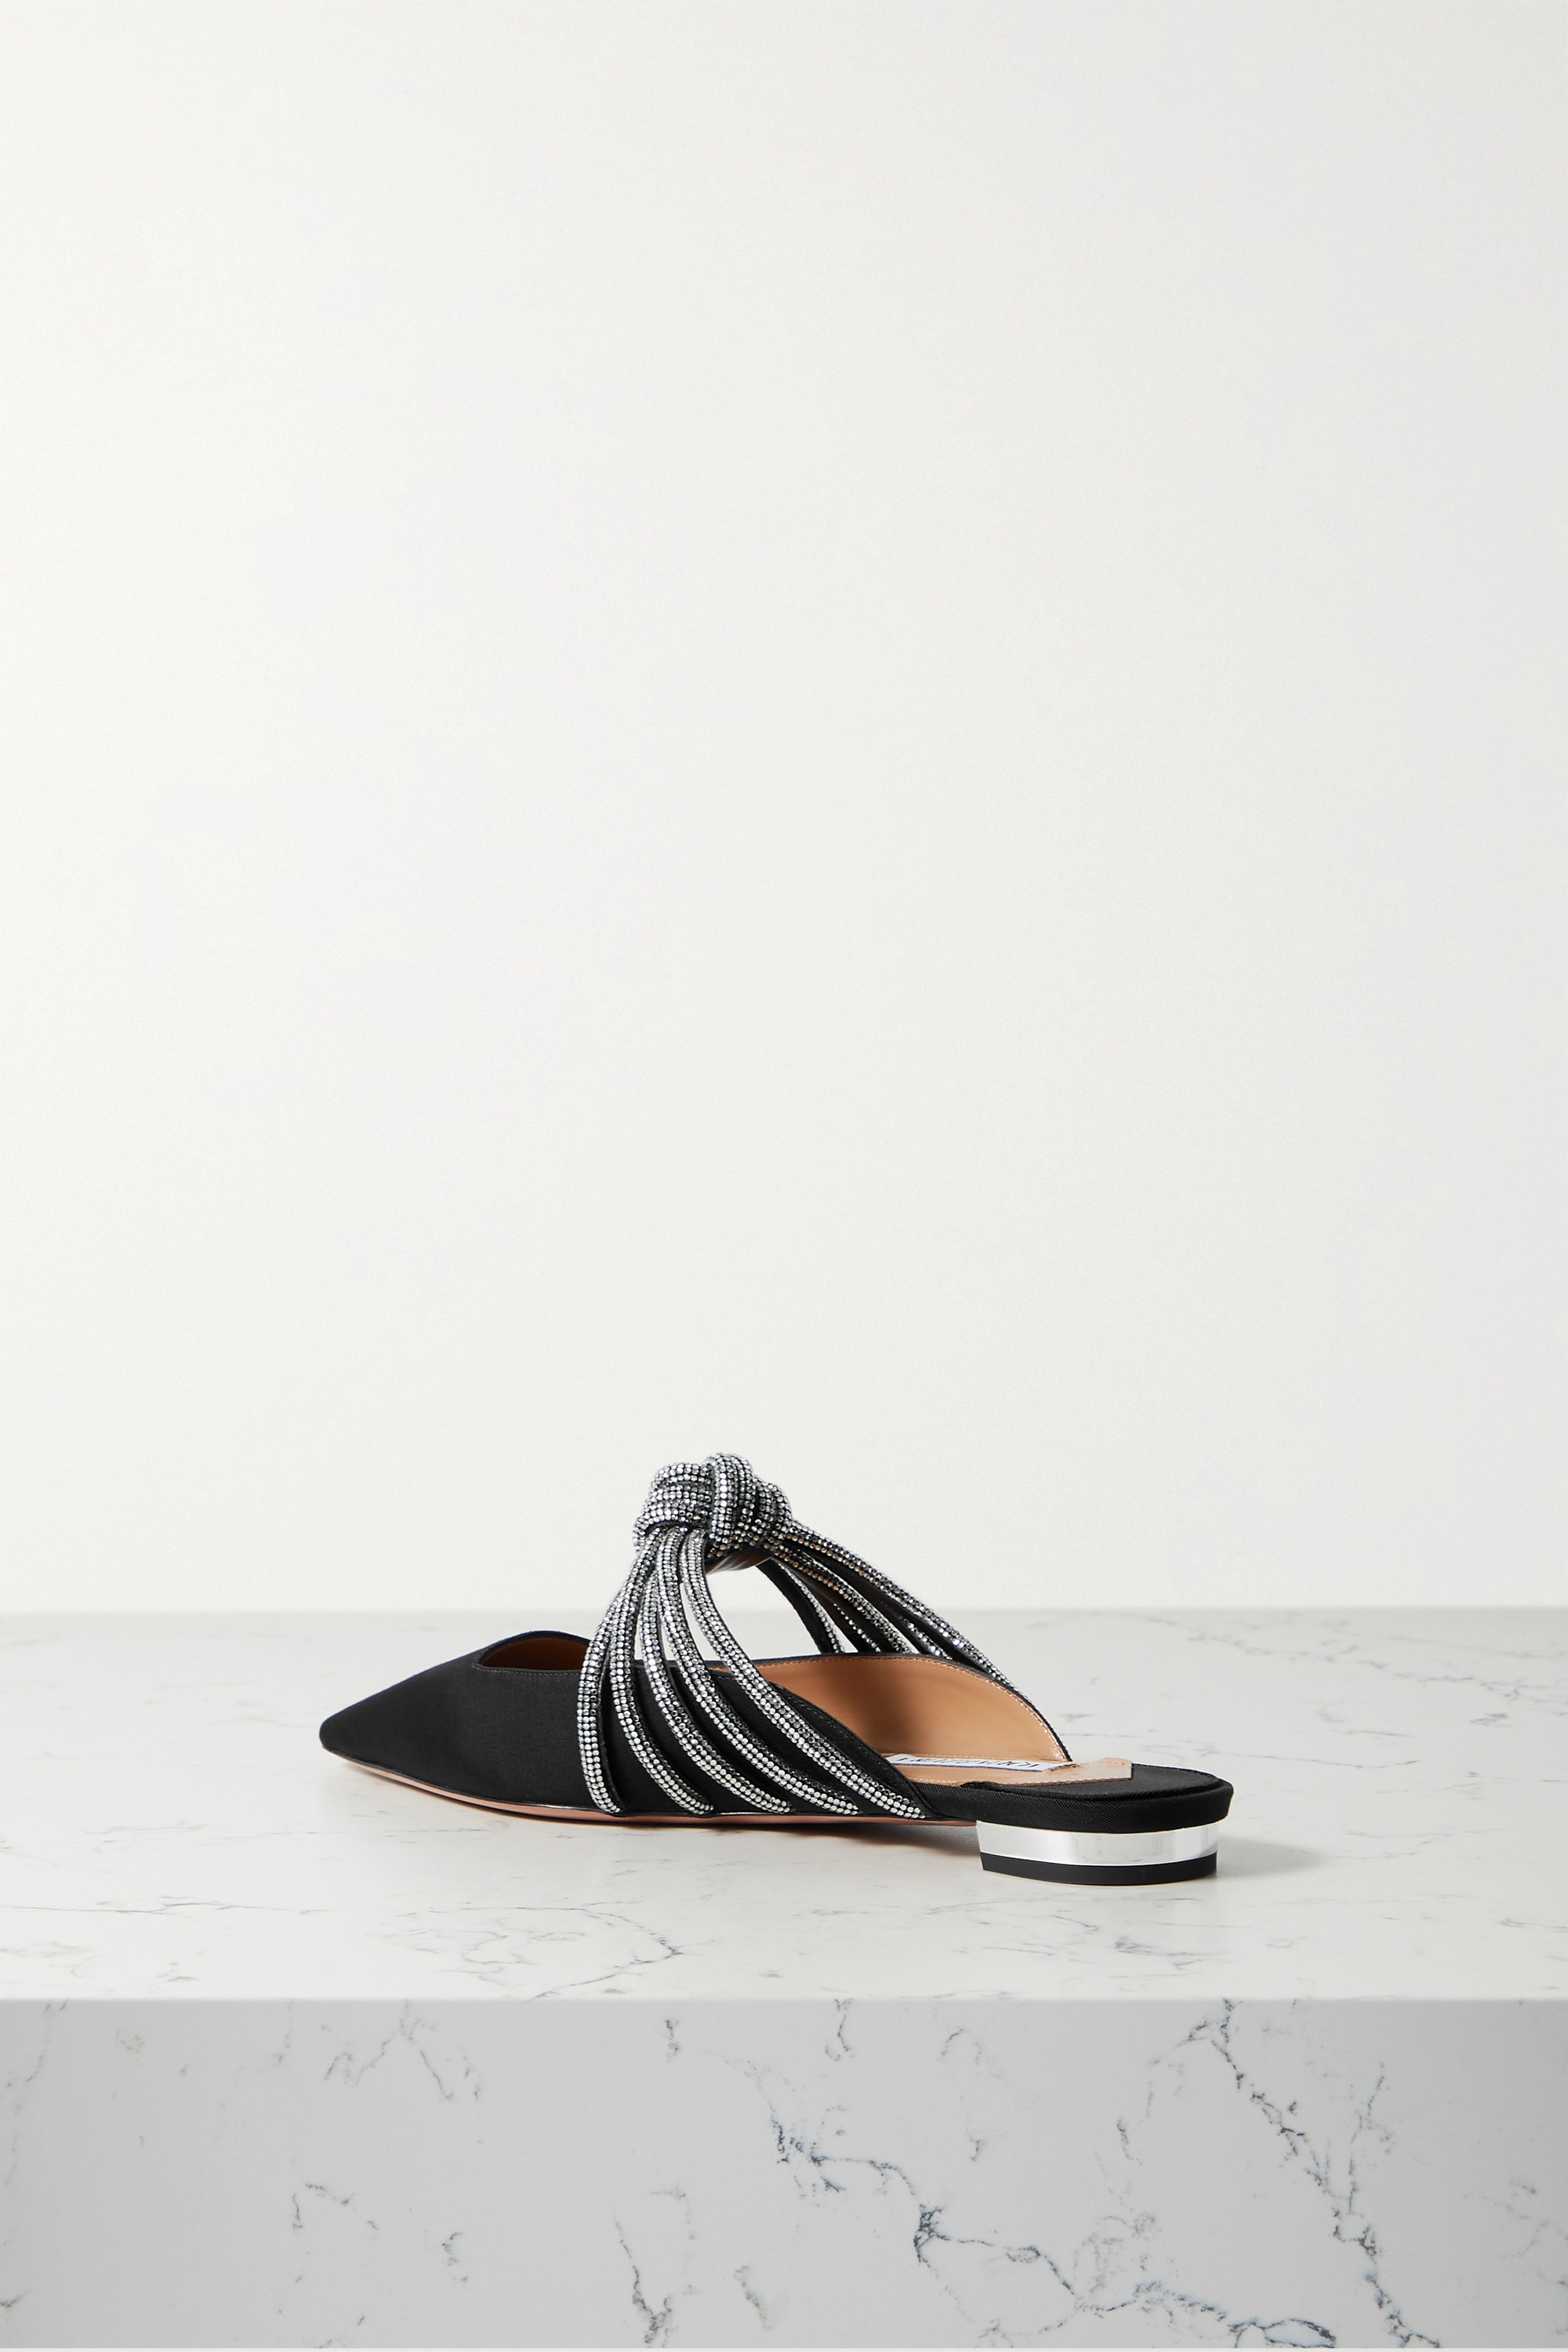 AQUAZZURA Celeste crystal-embellished knotted faille mules